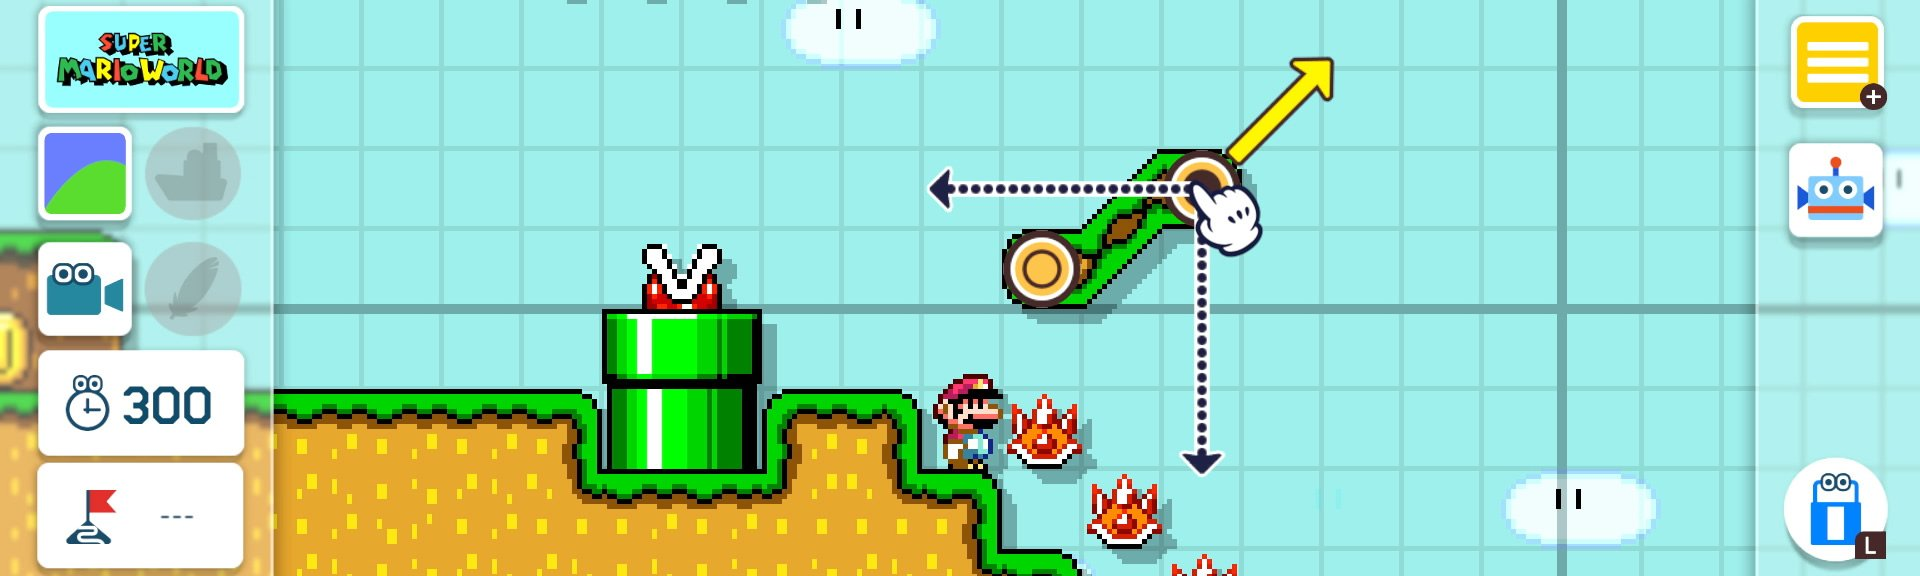 Super Mario Maker 2 guides wiki FAQ - Course Maker